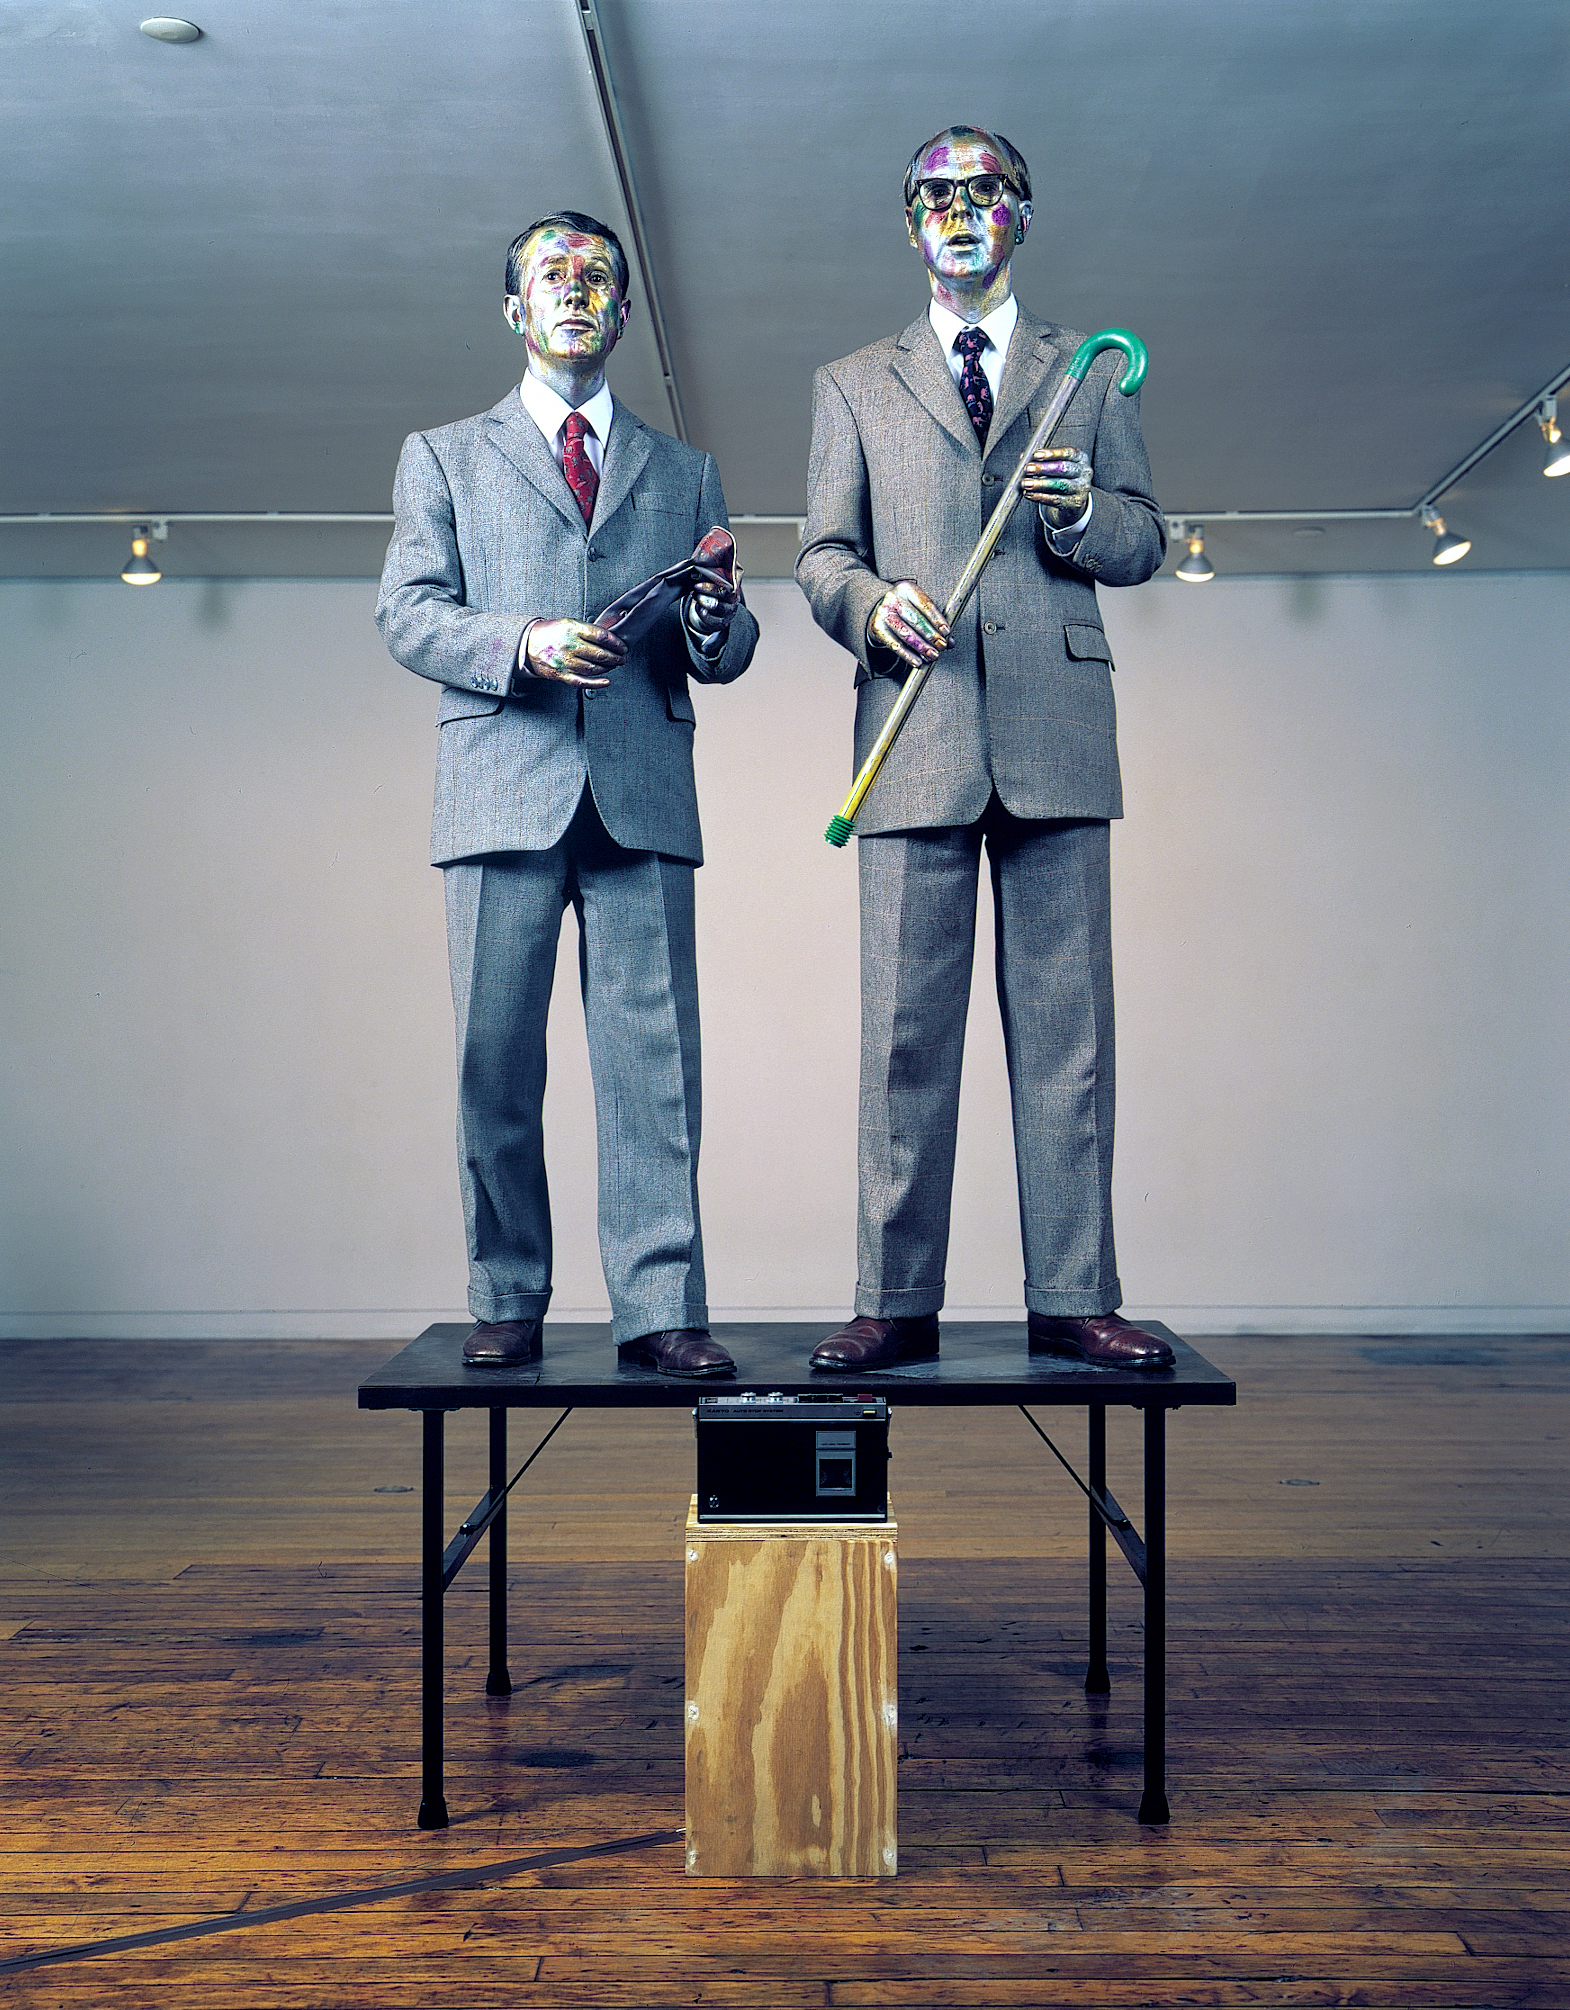 Gilbert & George: The Singing Sculpture, 1992